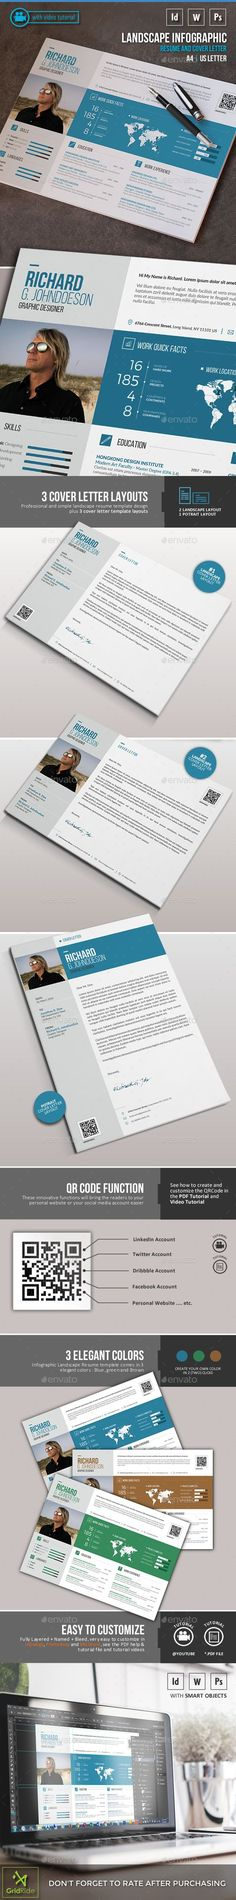 Professional and Creative Infographic Resume / Cv Design Template ...